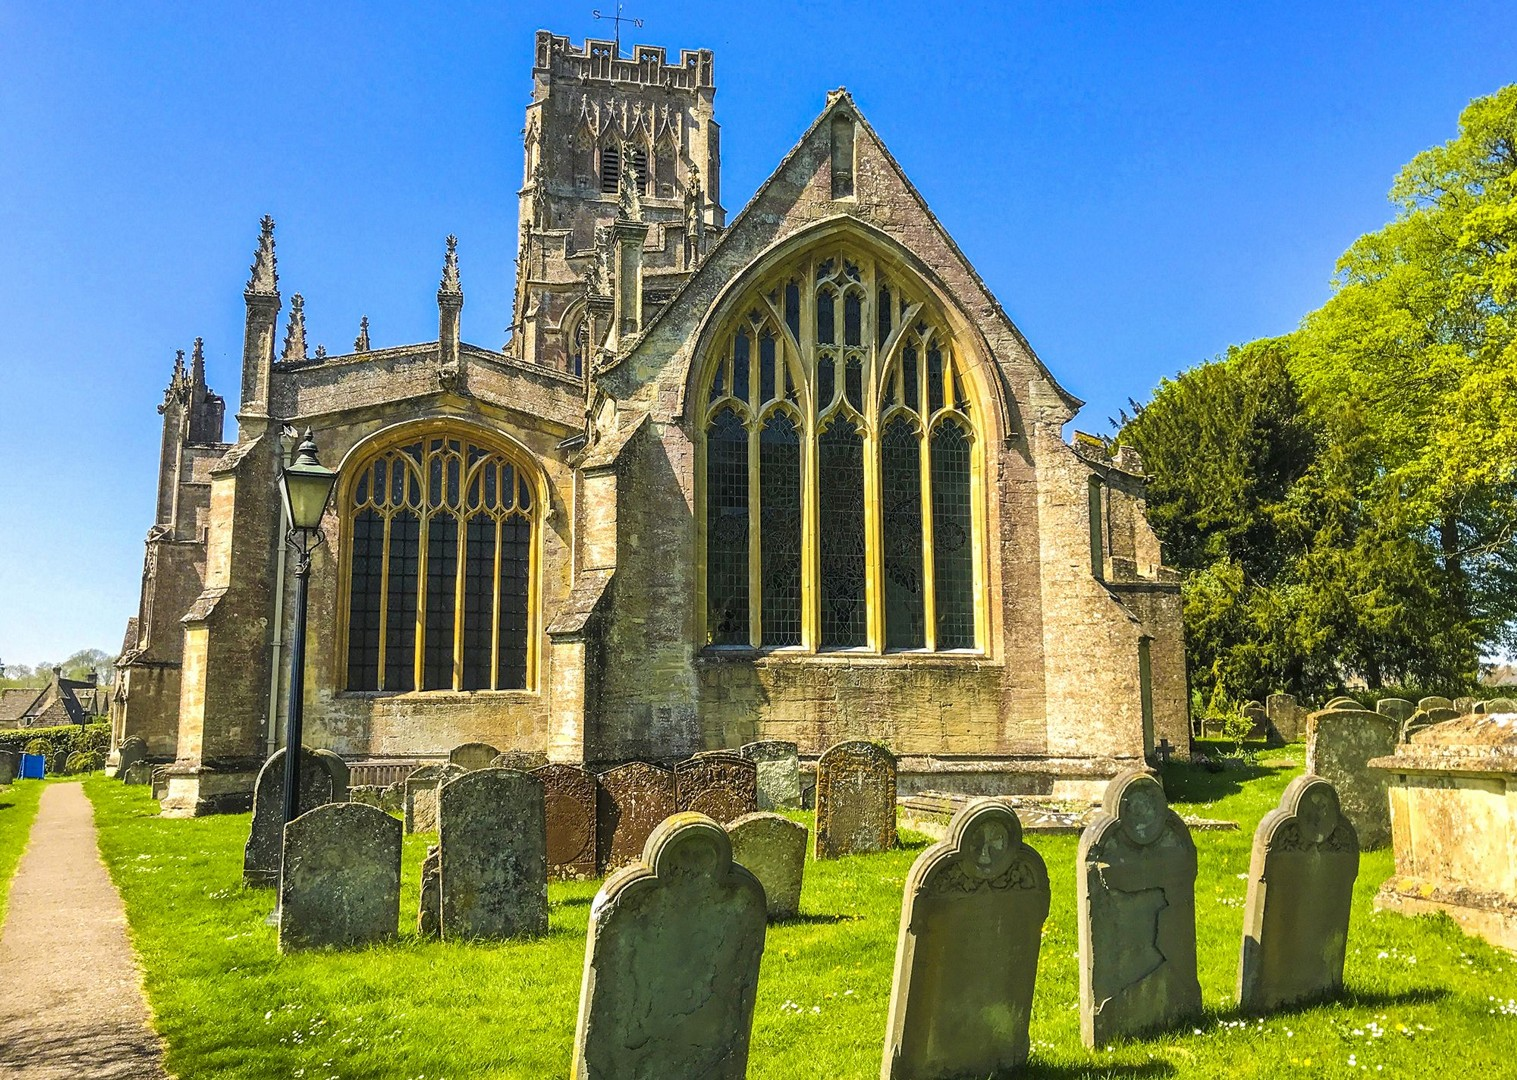 churches-quiet-peaceful-cycling-sights-landmarks-local-culture.jpg - UK - Cotswolds - Bourton-on-the-Water - Guided Leisure Cycling Holiday - Leisure Cycling